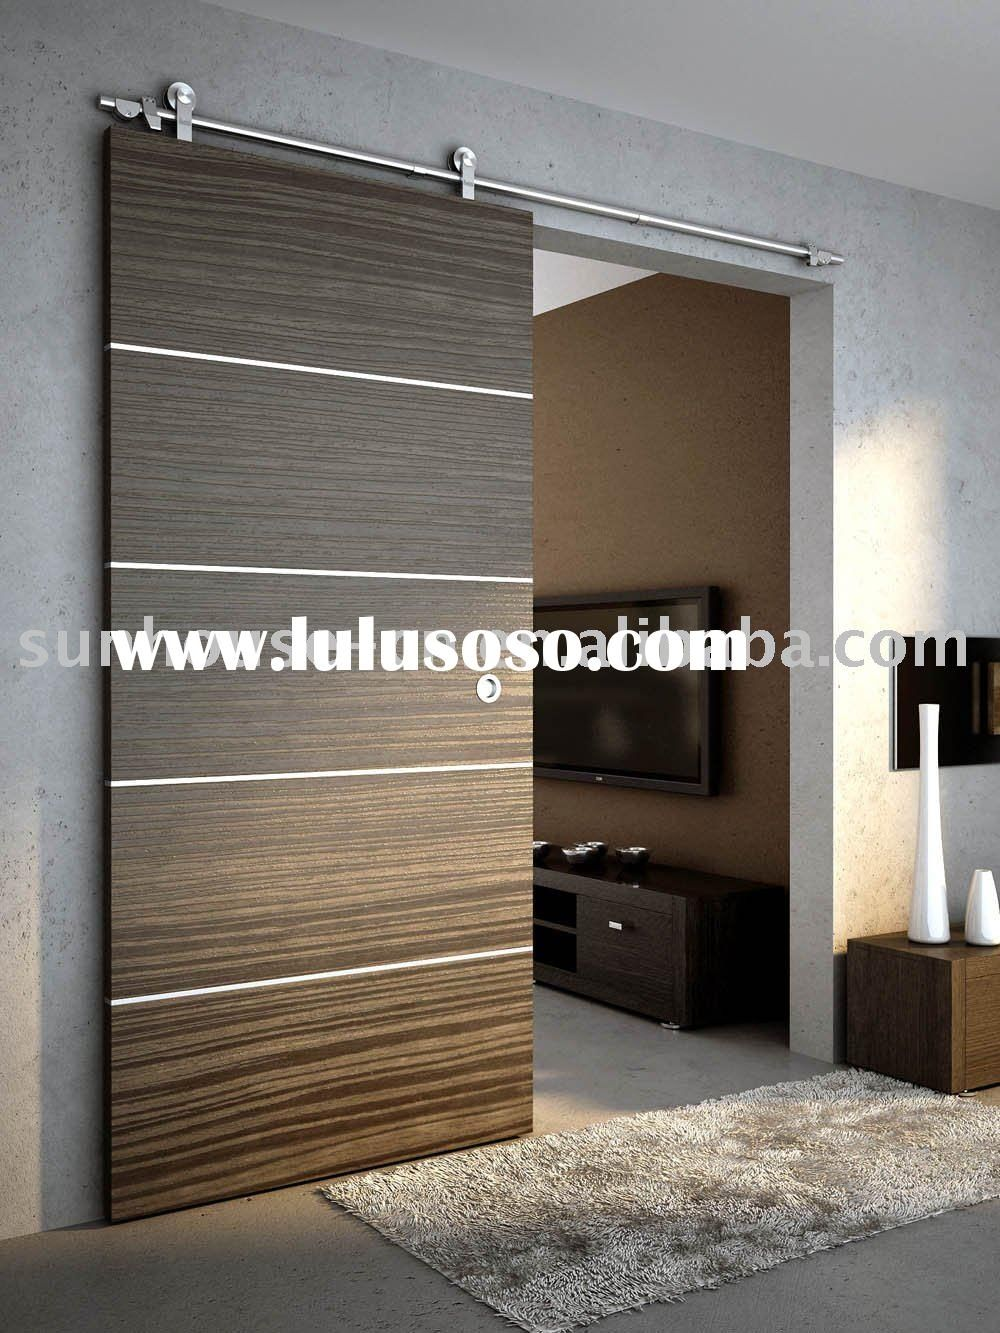 Wood sliding door sliding door fitting home decor for Wooden door pattern